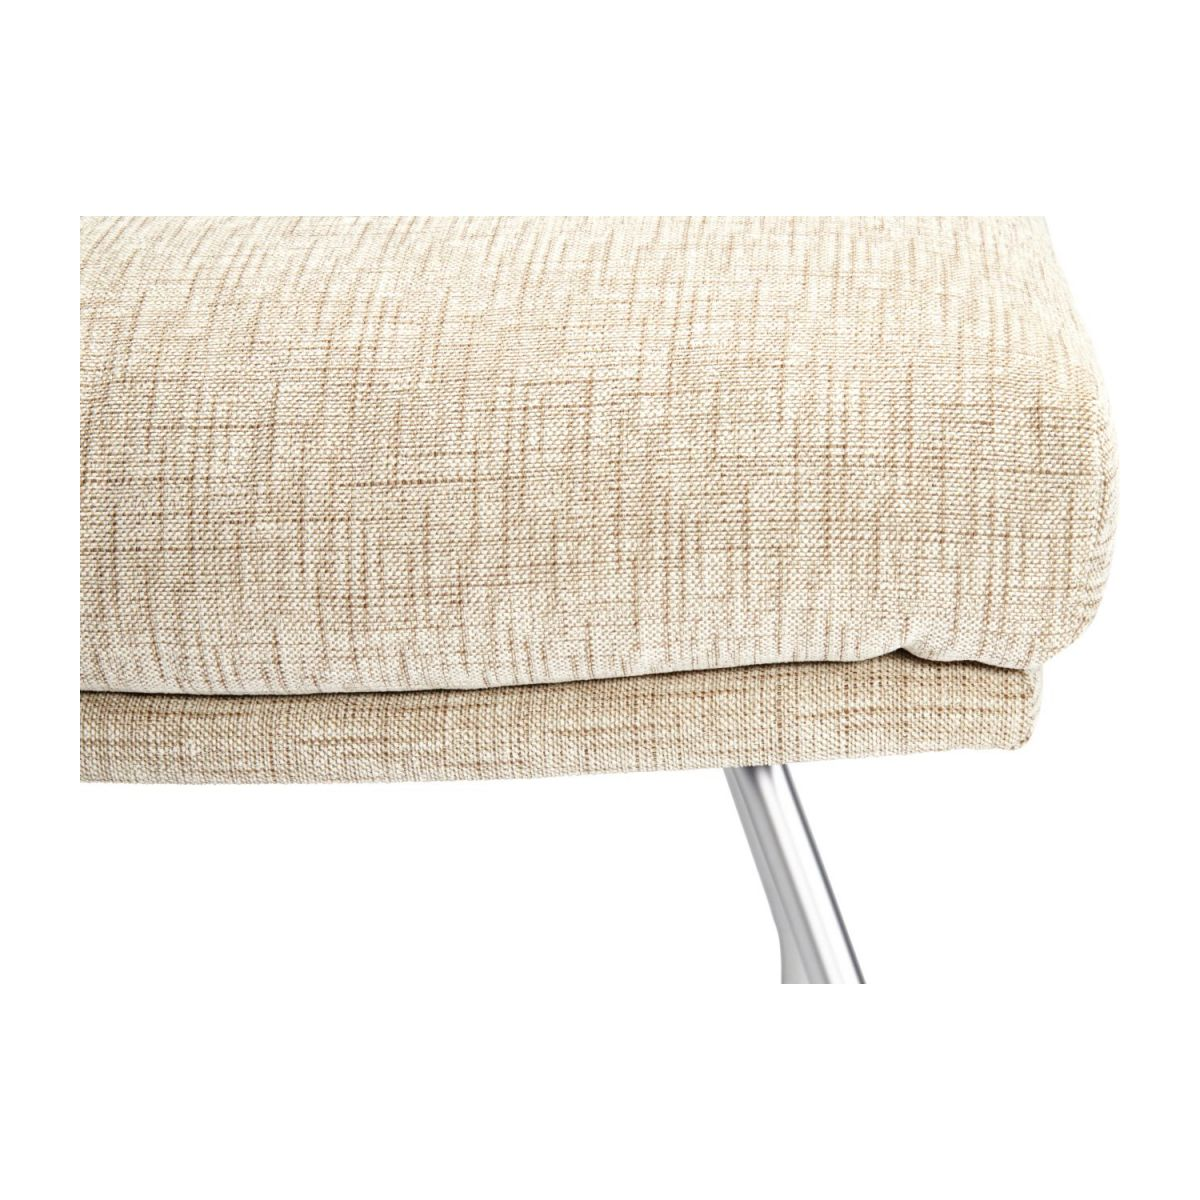 Footstool in Ancio fabric, nature with matt metal legs n°5